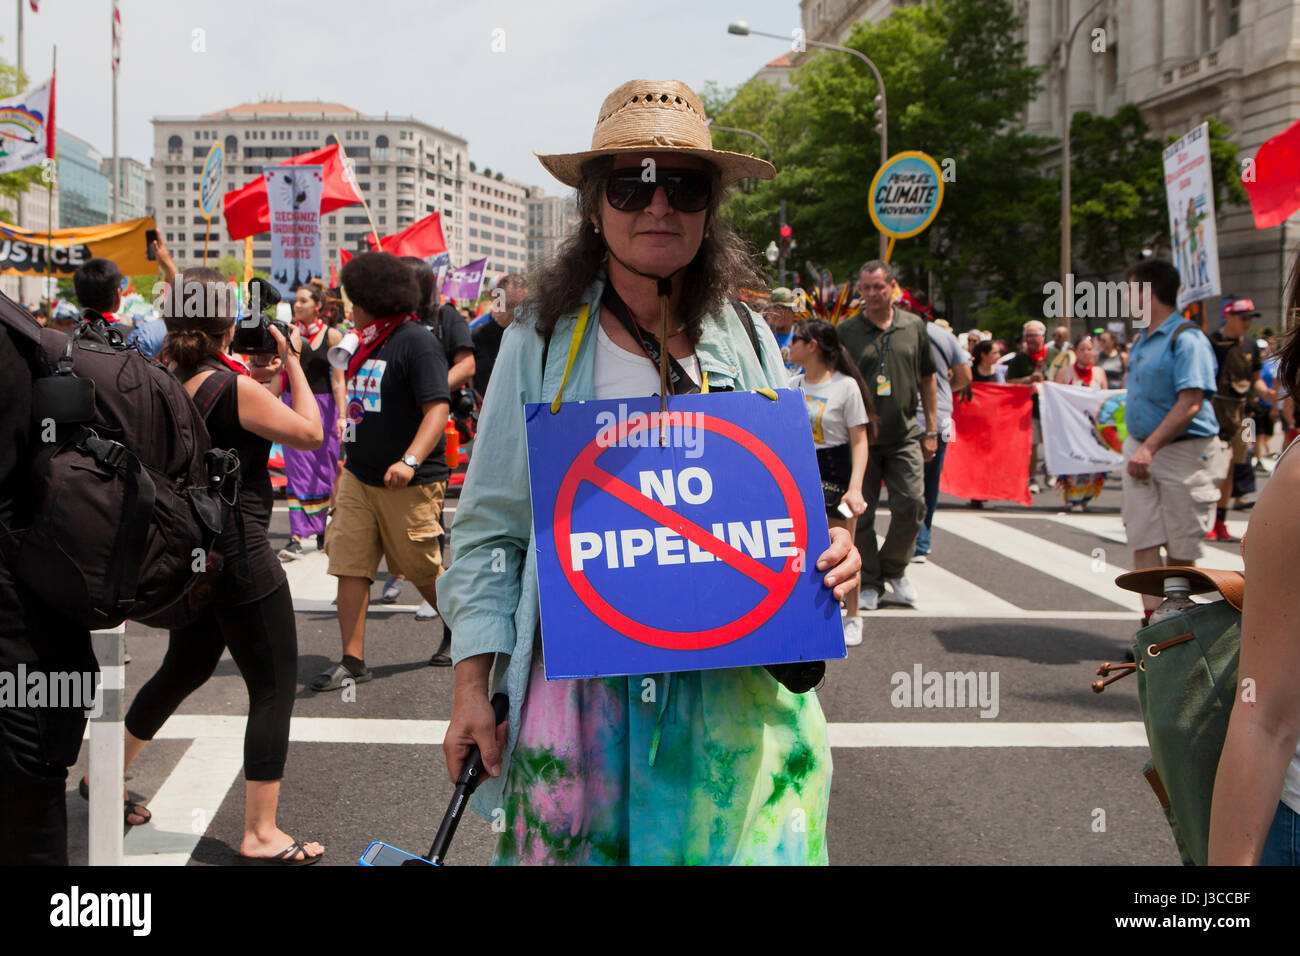 2017 People's Climate March (woman holding 'No Pipeline' sign, referring to Keystone XL pipeline) - - Stock Image